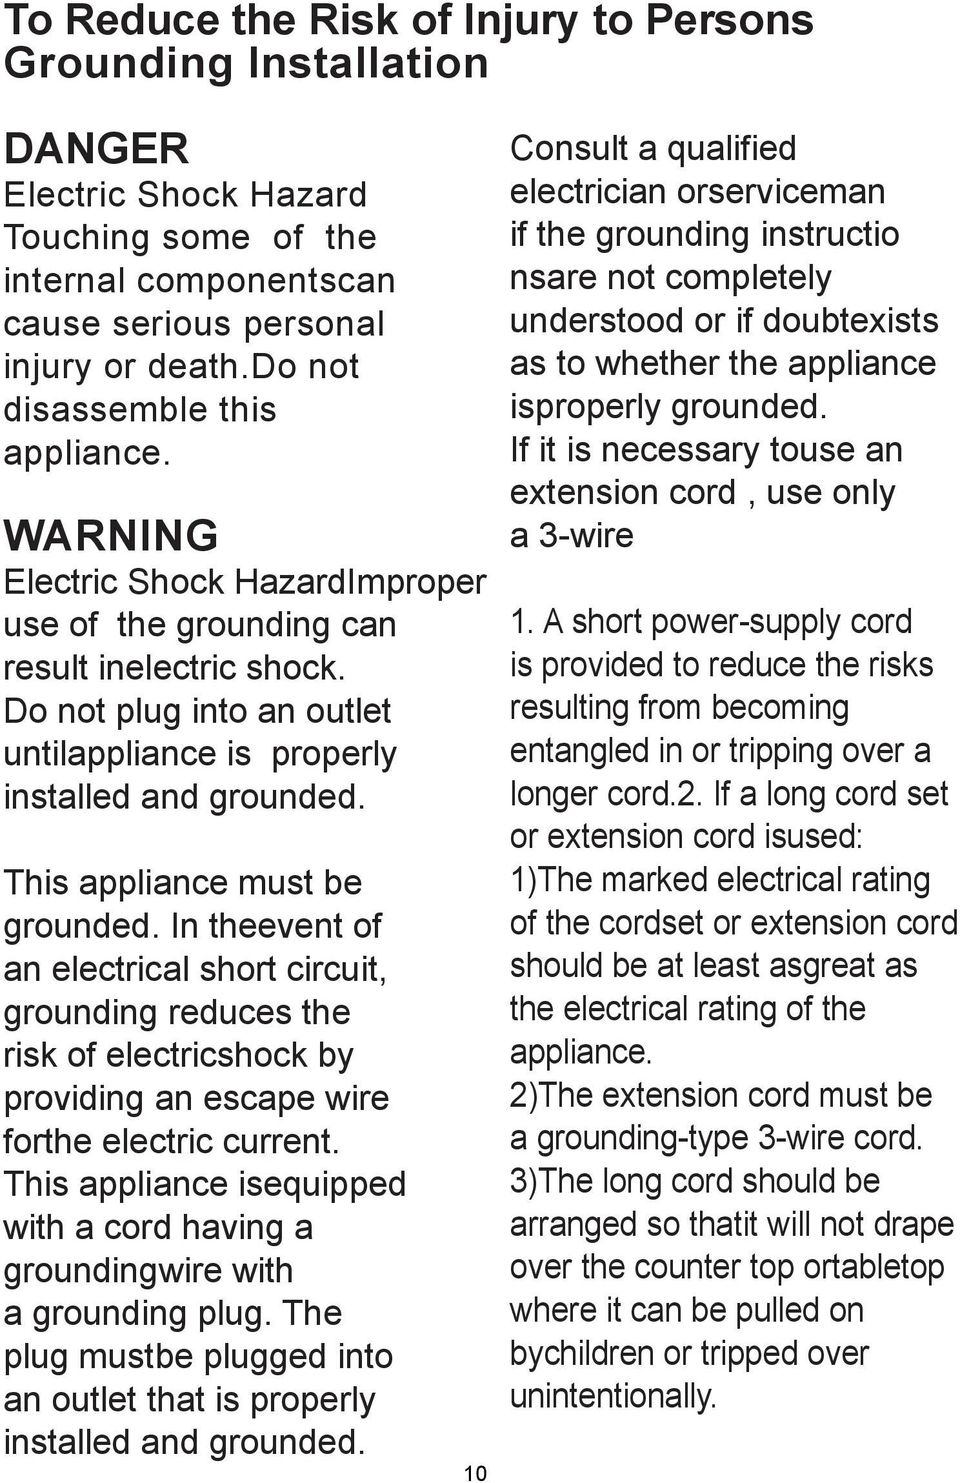 This appliance must be grounded. In theevent of an electrical short circuit, grounding reduces the risk of electricshock by providing an escape wire forthe electric current.